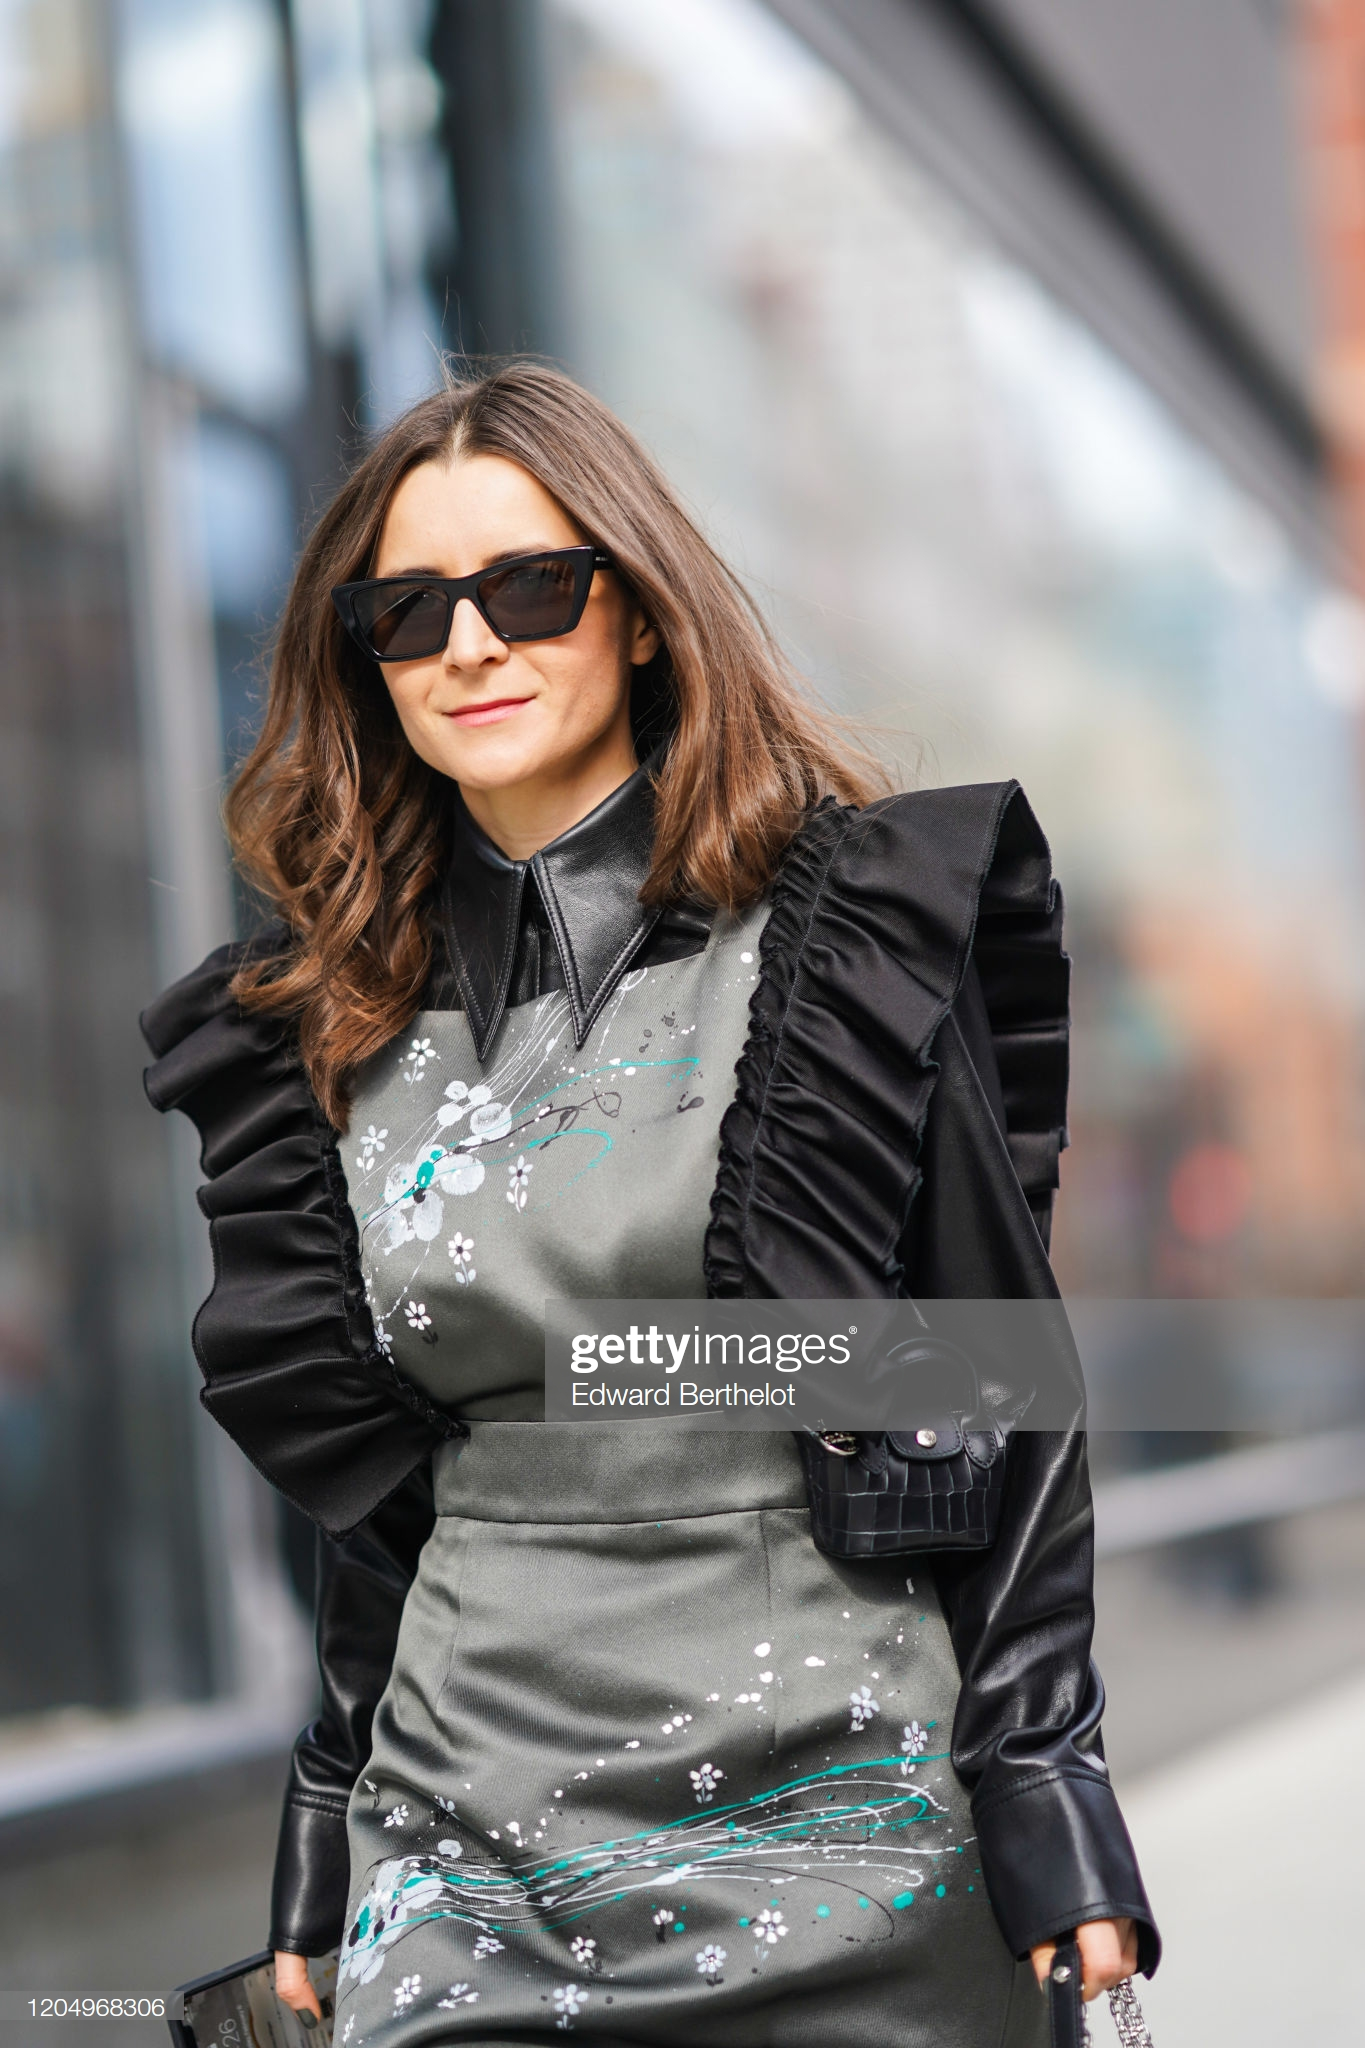 Street Style New York Fashion Week NYFW AW2020 FW2020 Longchamp Julia Comil